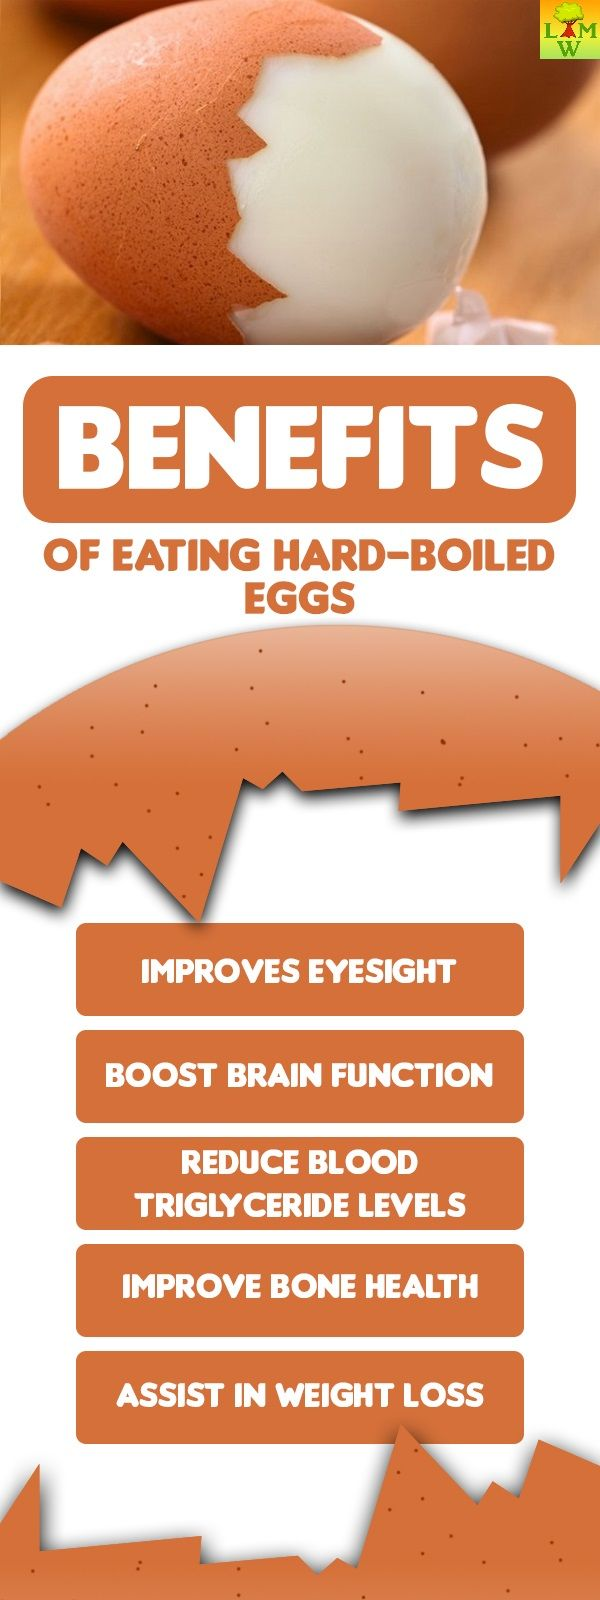 Hard-boiled eggs are quite nutritious because they are packed with vitamins, minerals, and a host of other essential nutrients.